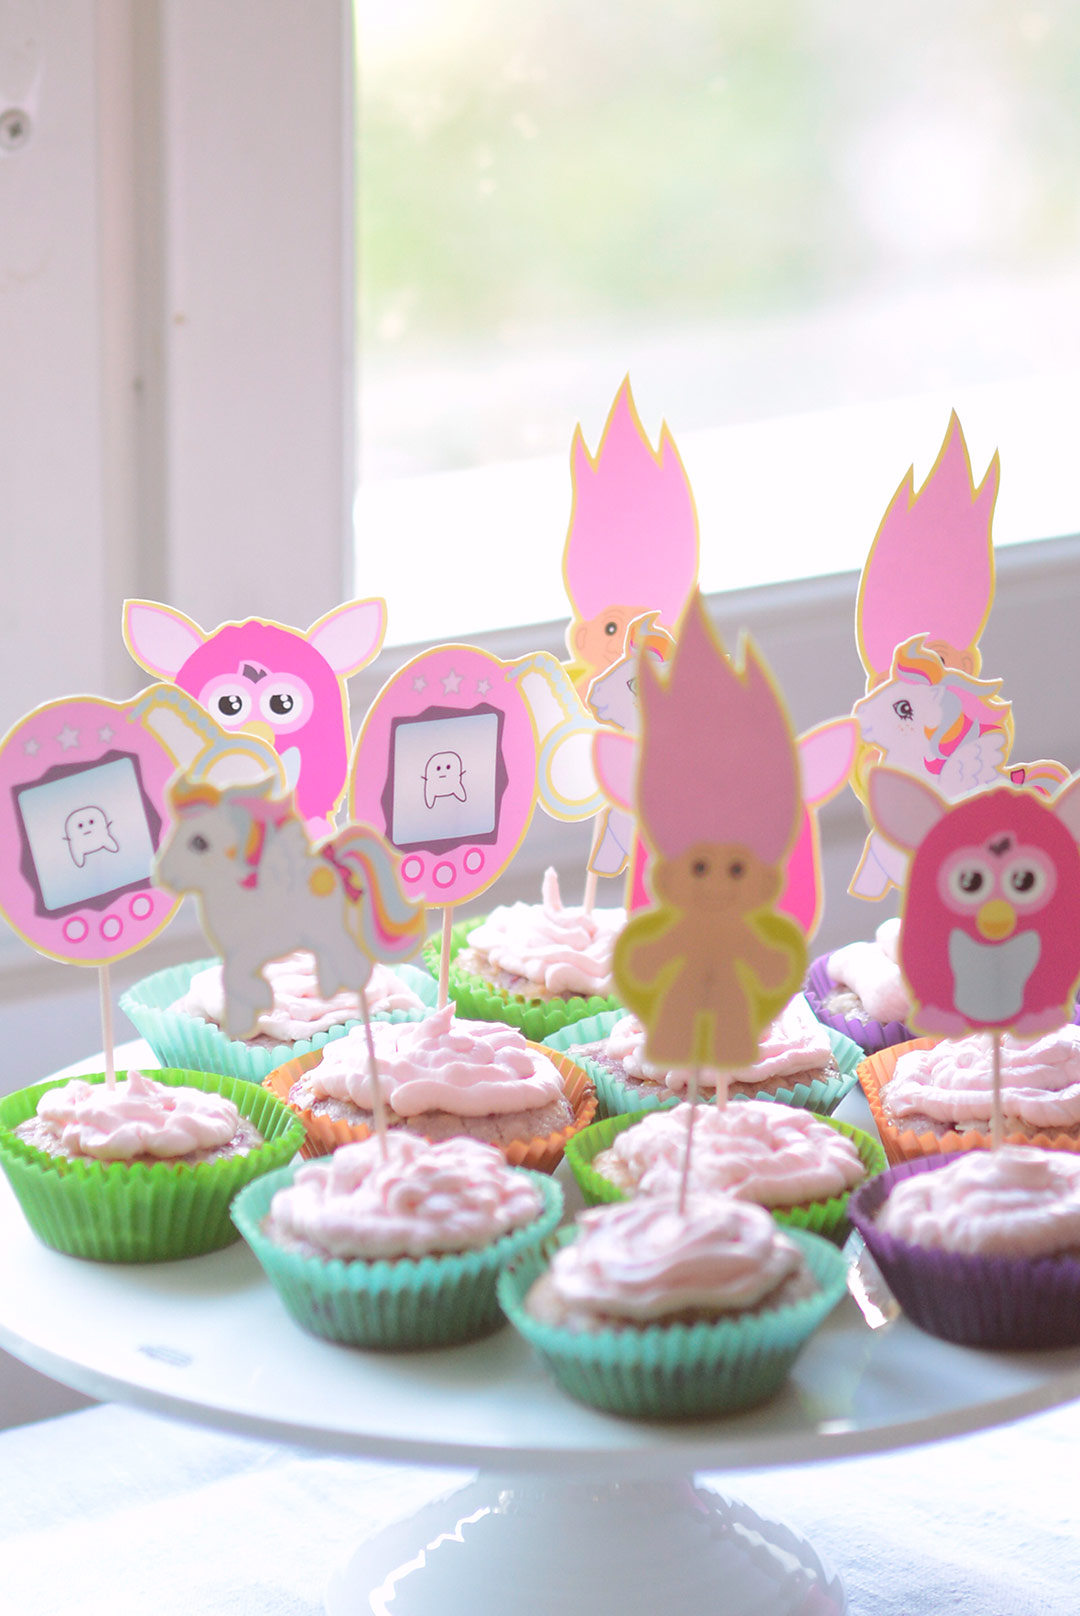 Cute pink 90's party printables